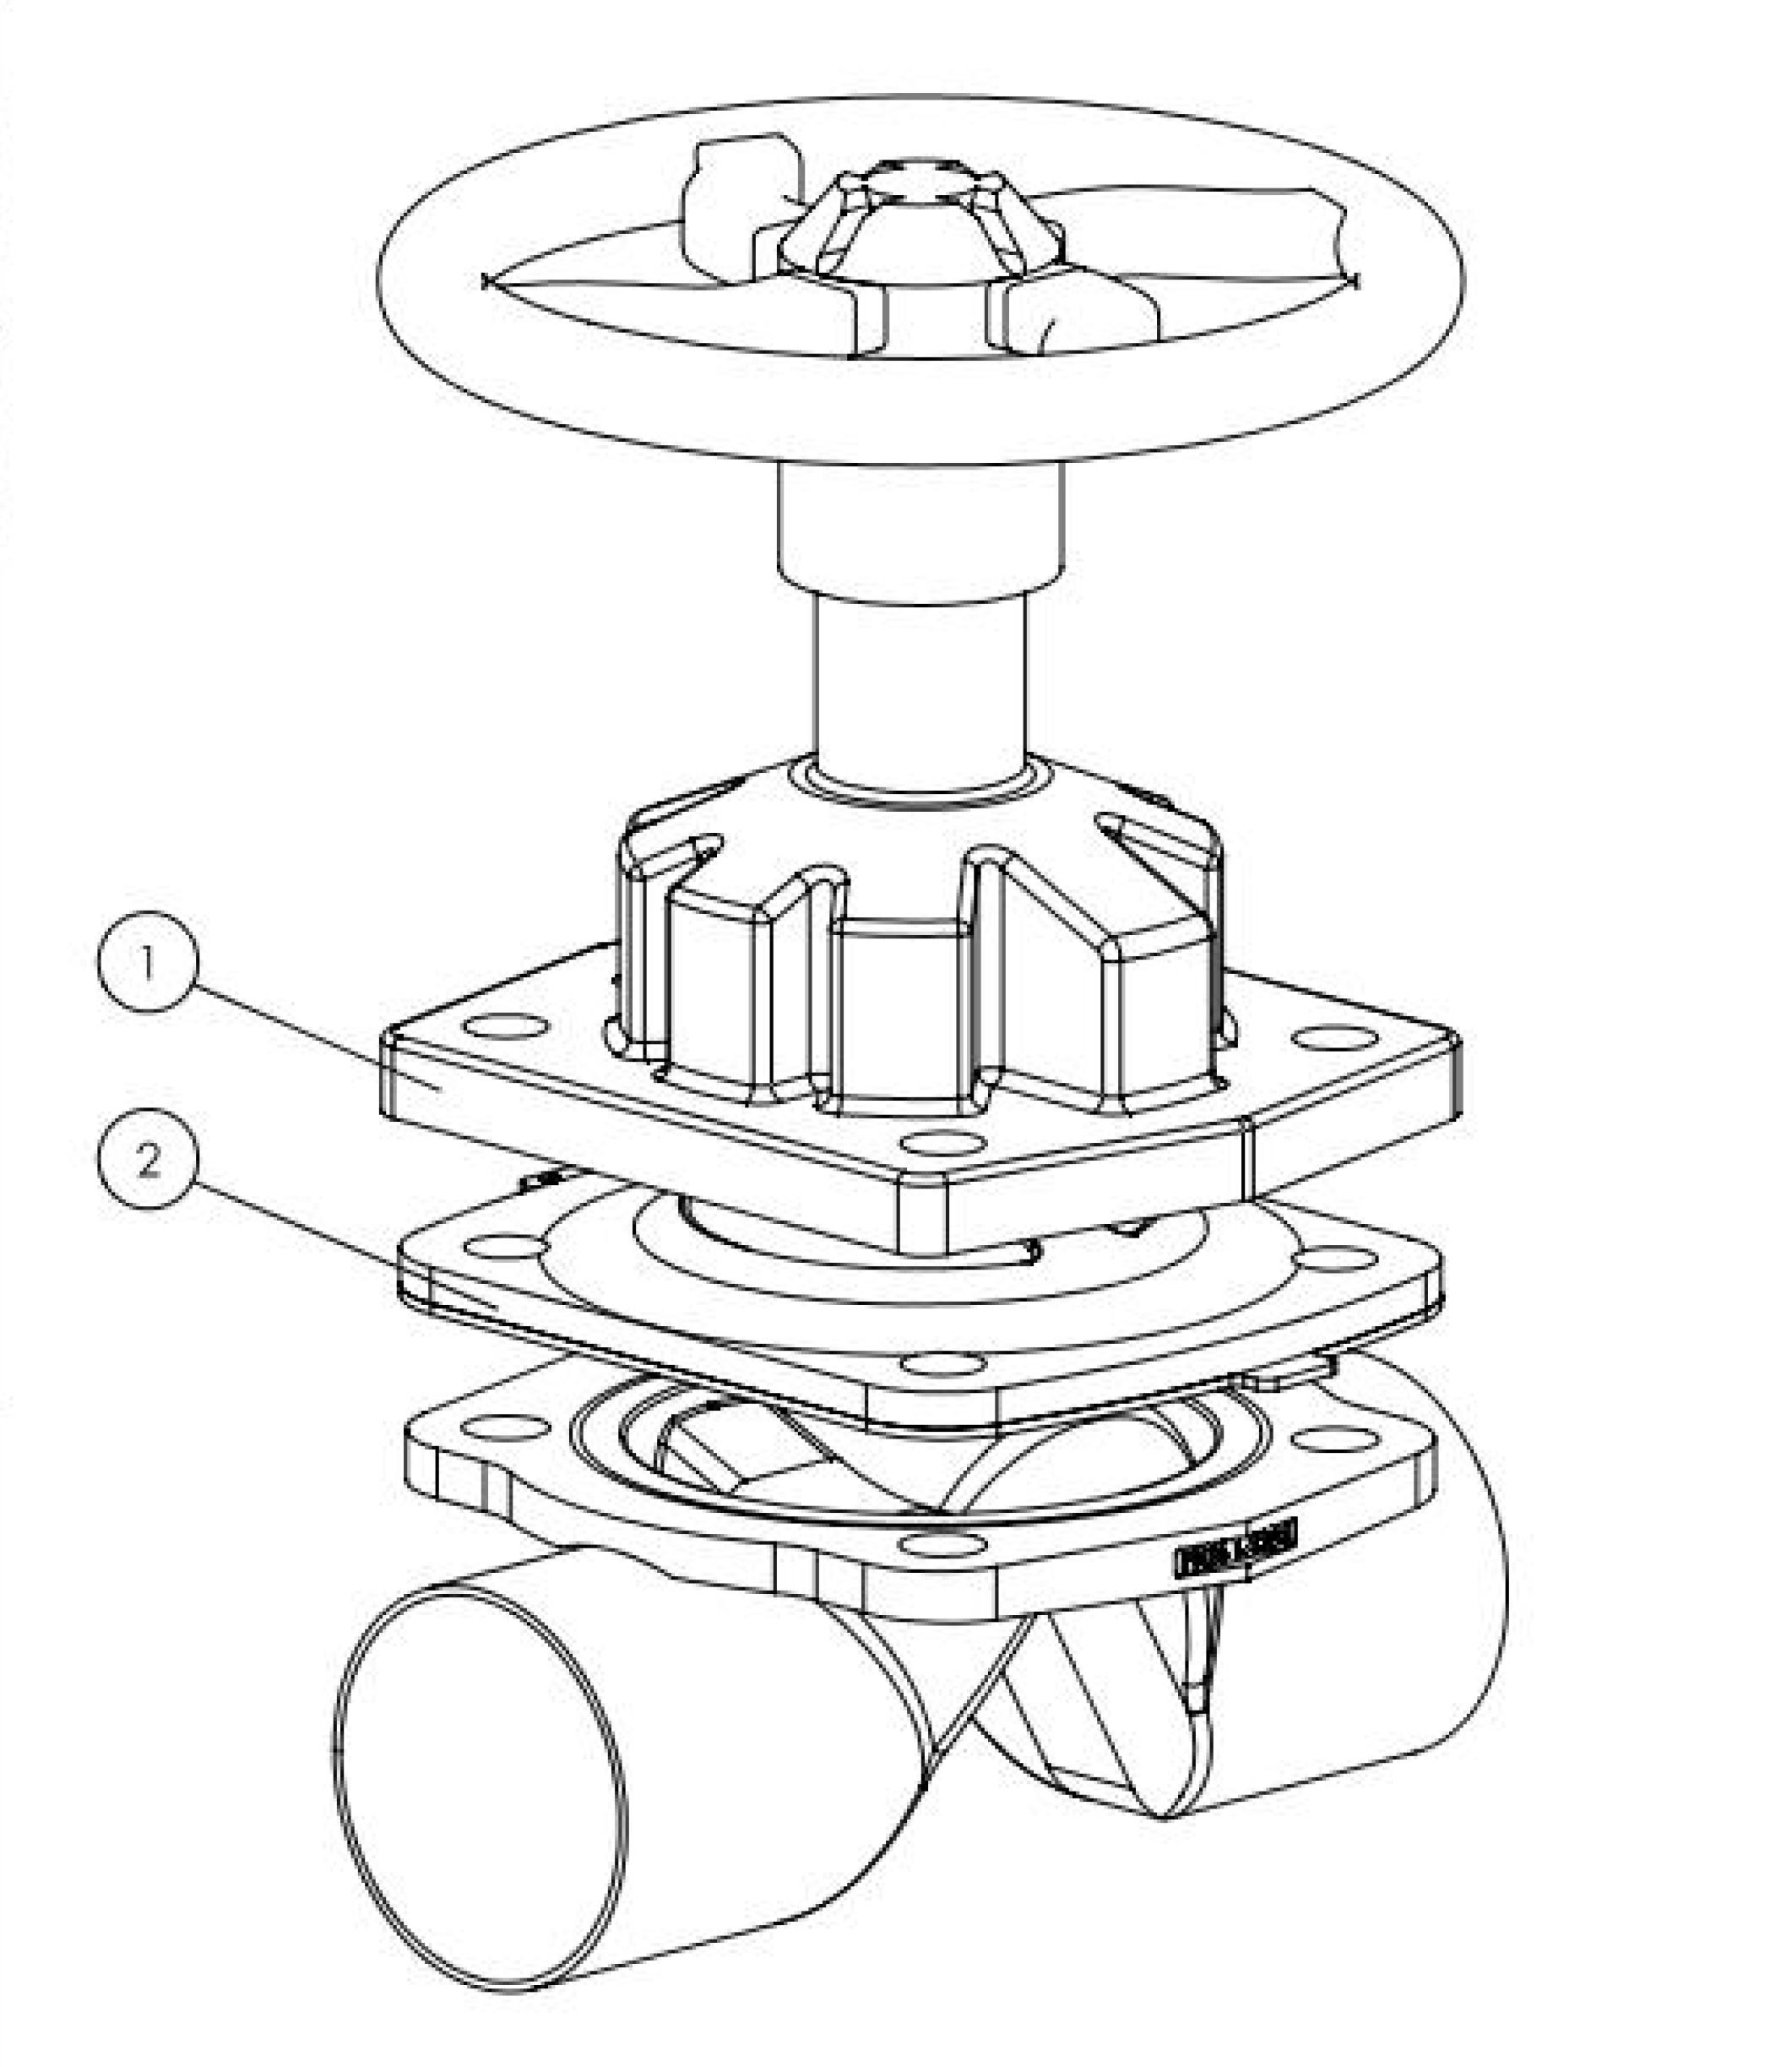 441834 stainless steel diaphragm valve manual diaphragm valves the depiction of the products may differ from the actual specific design ccuart Image collections